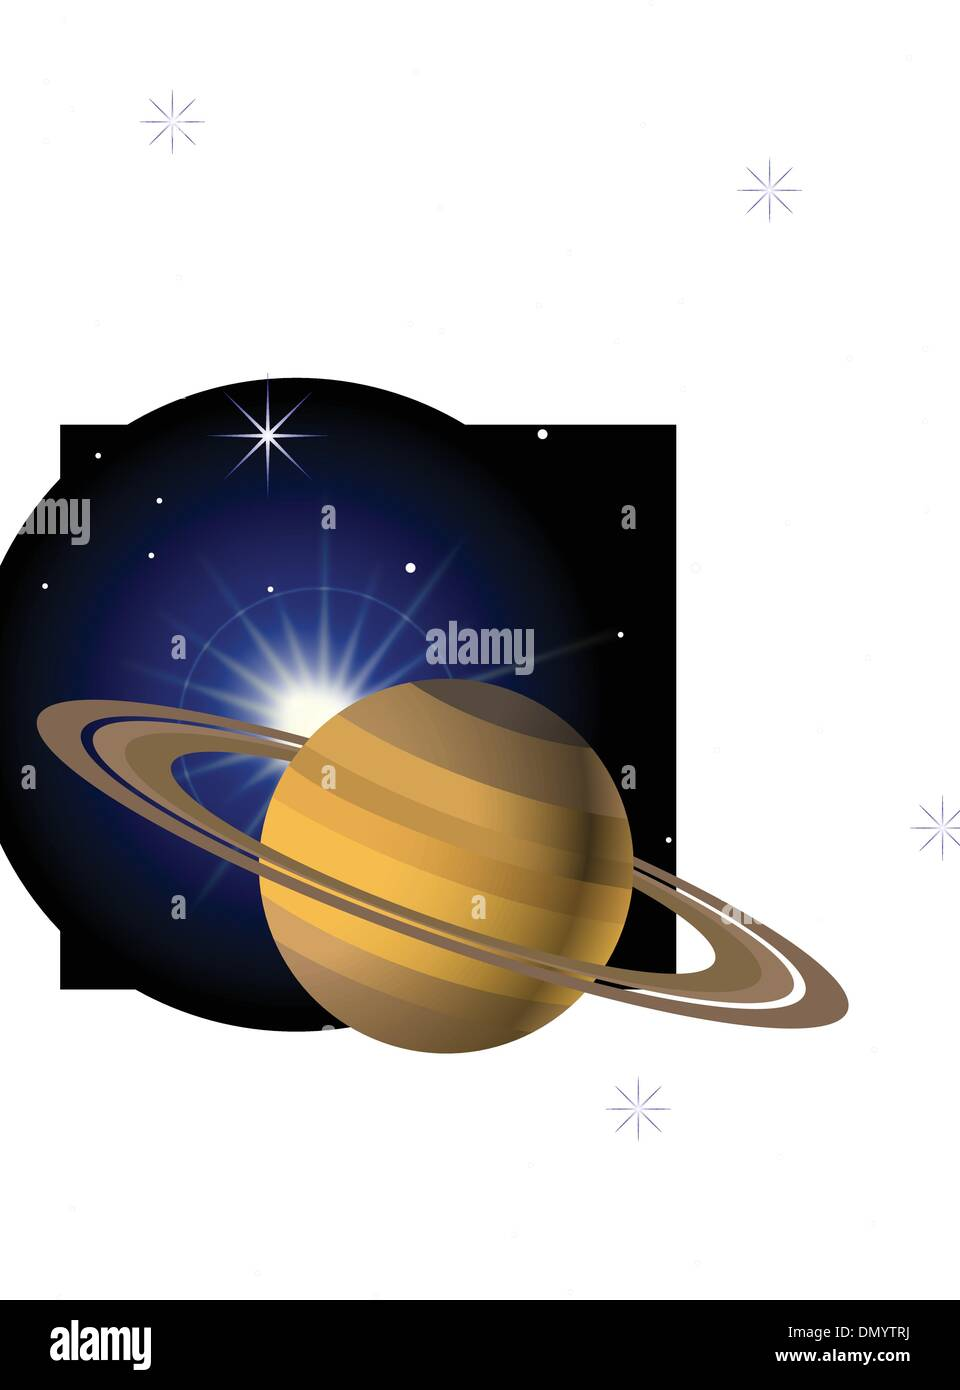 Planet background - Stock Image